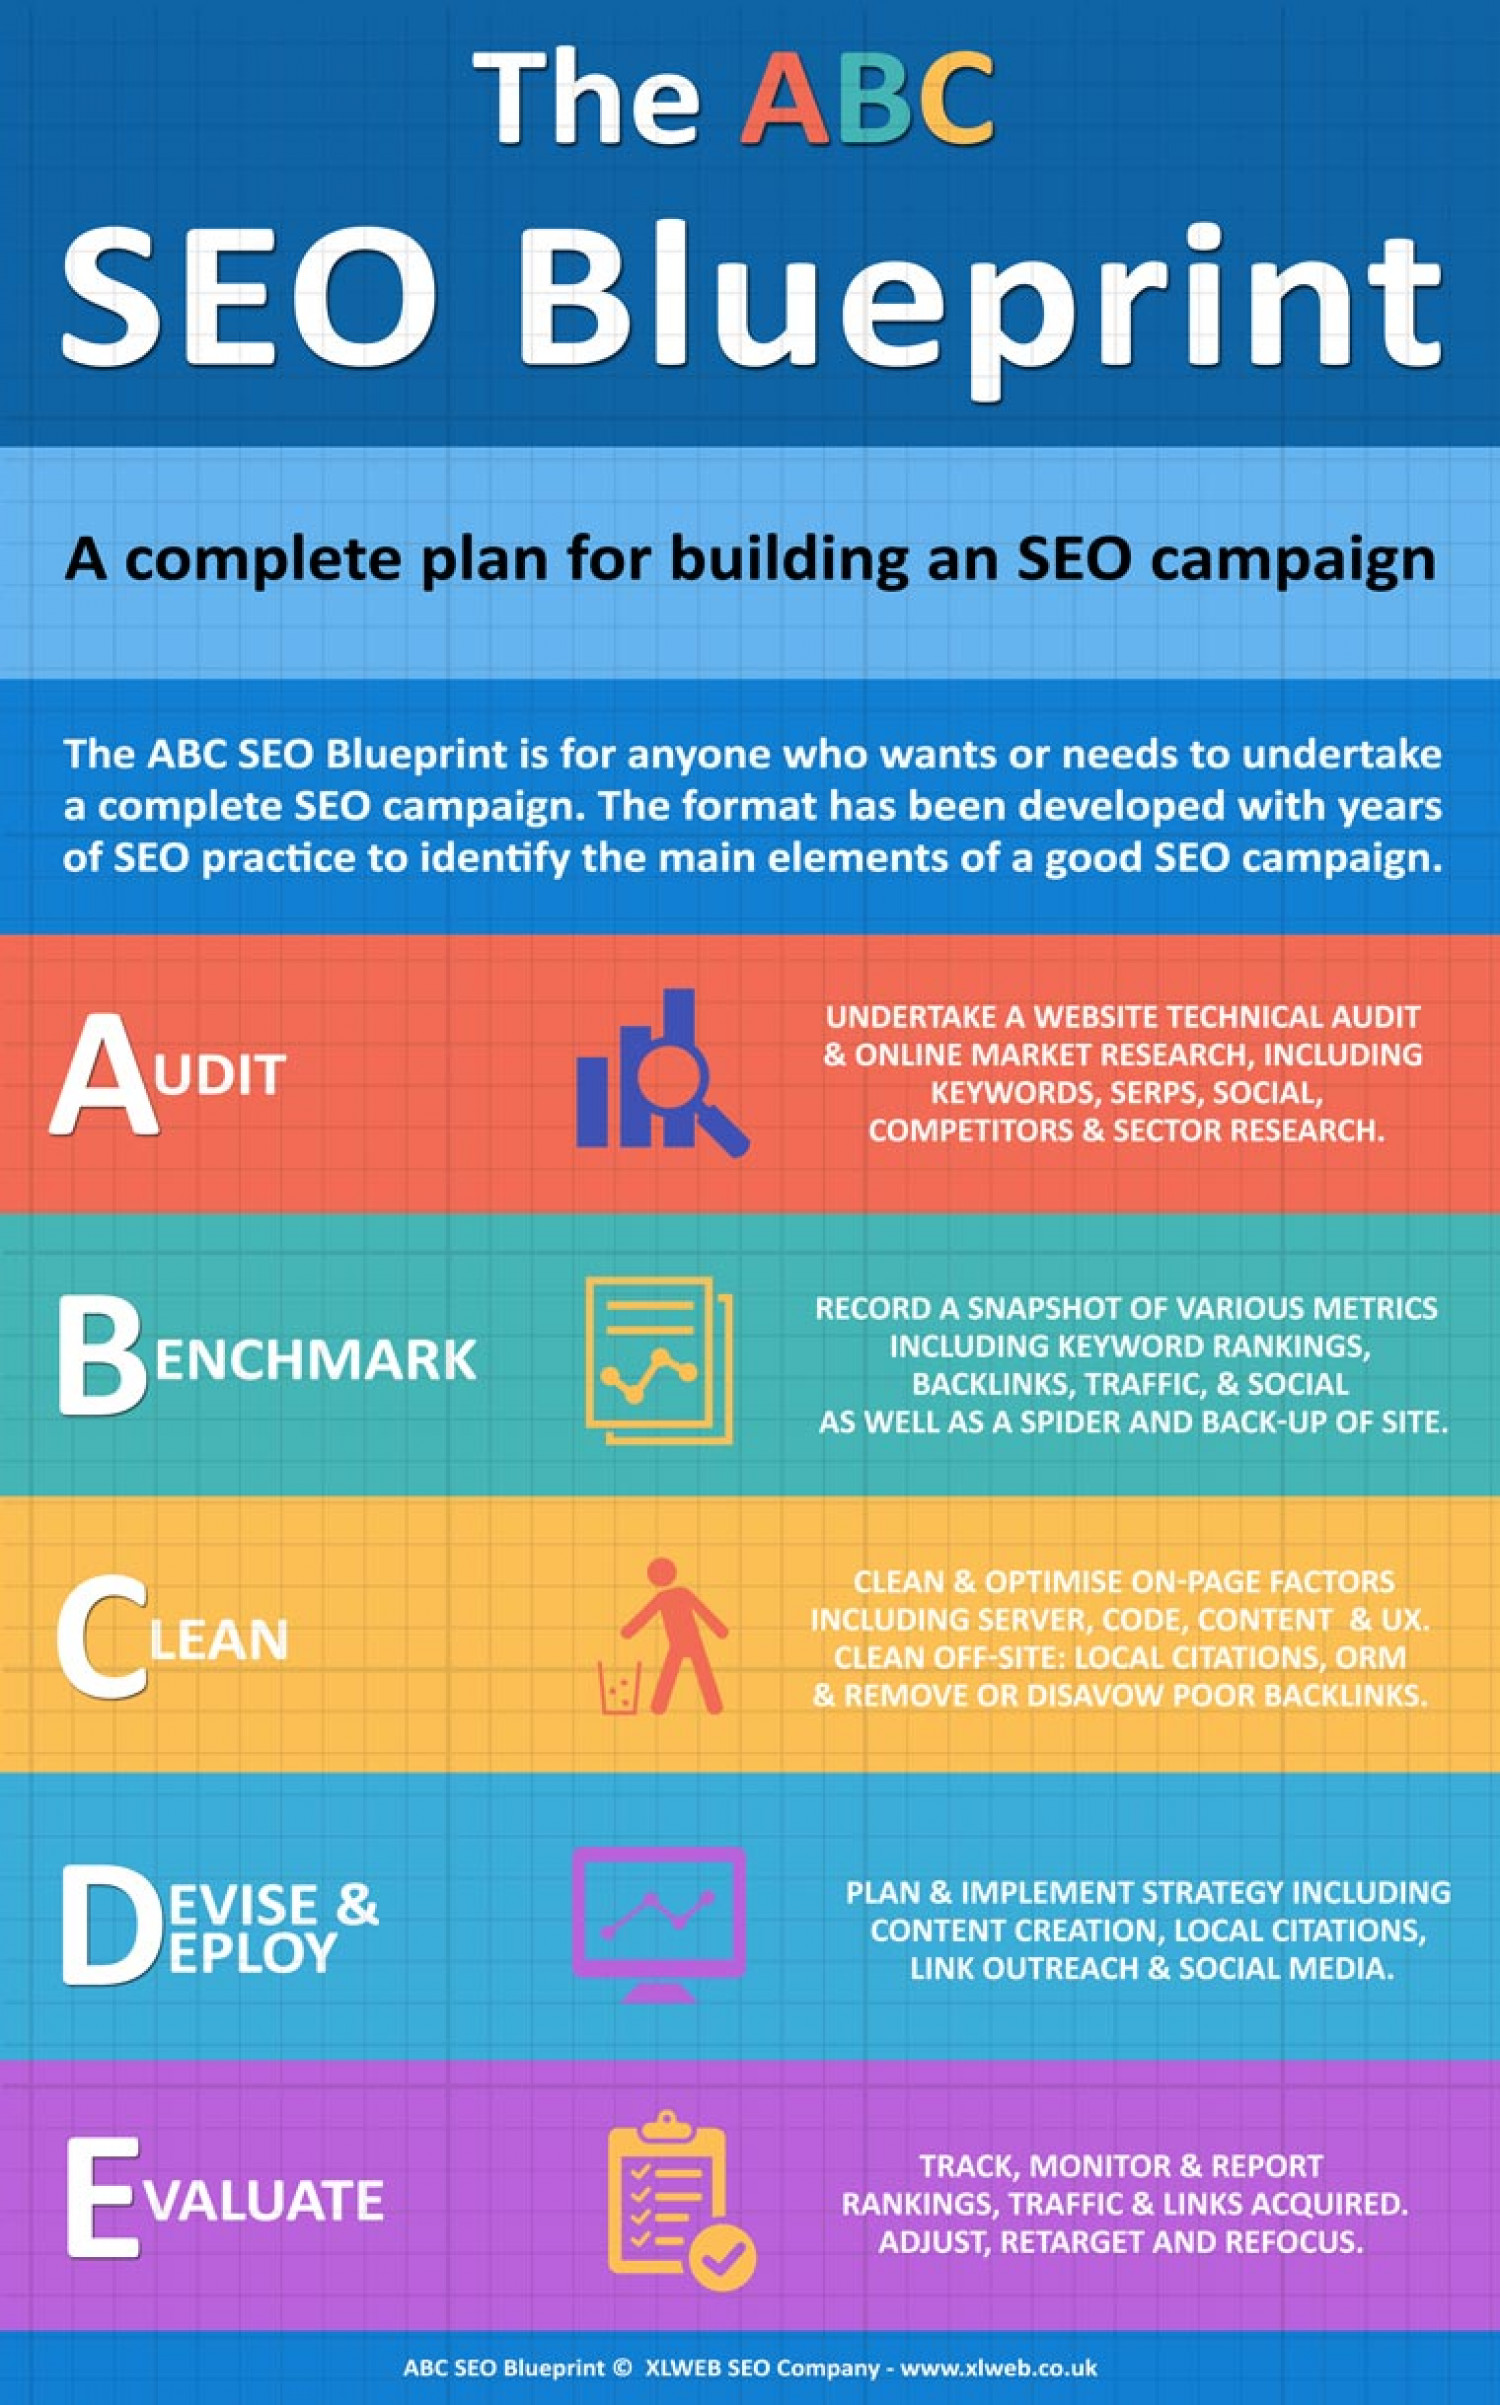 The abc seo blueprint visual the abc seo blueprint infographic malvernweather Images